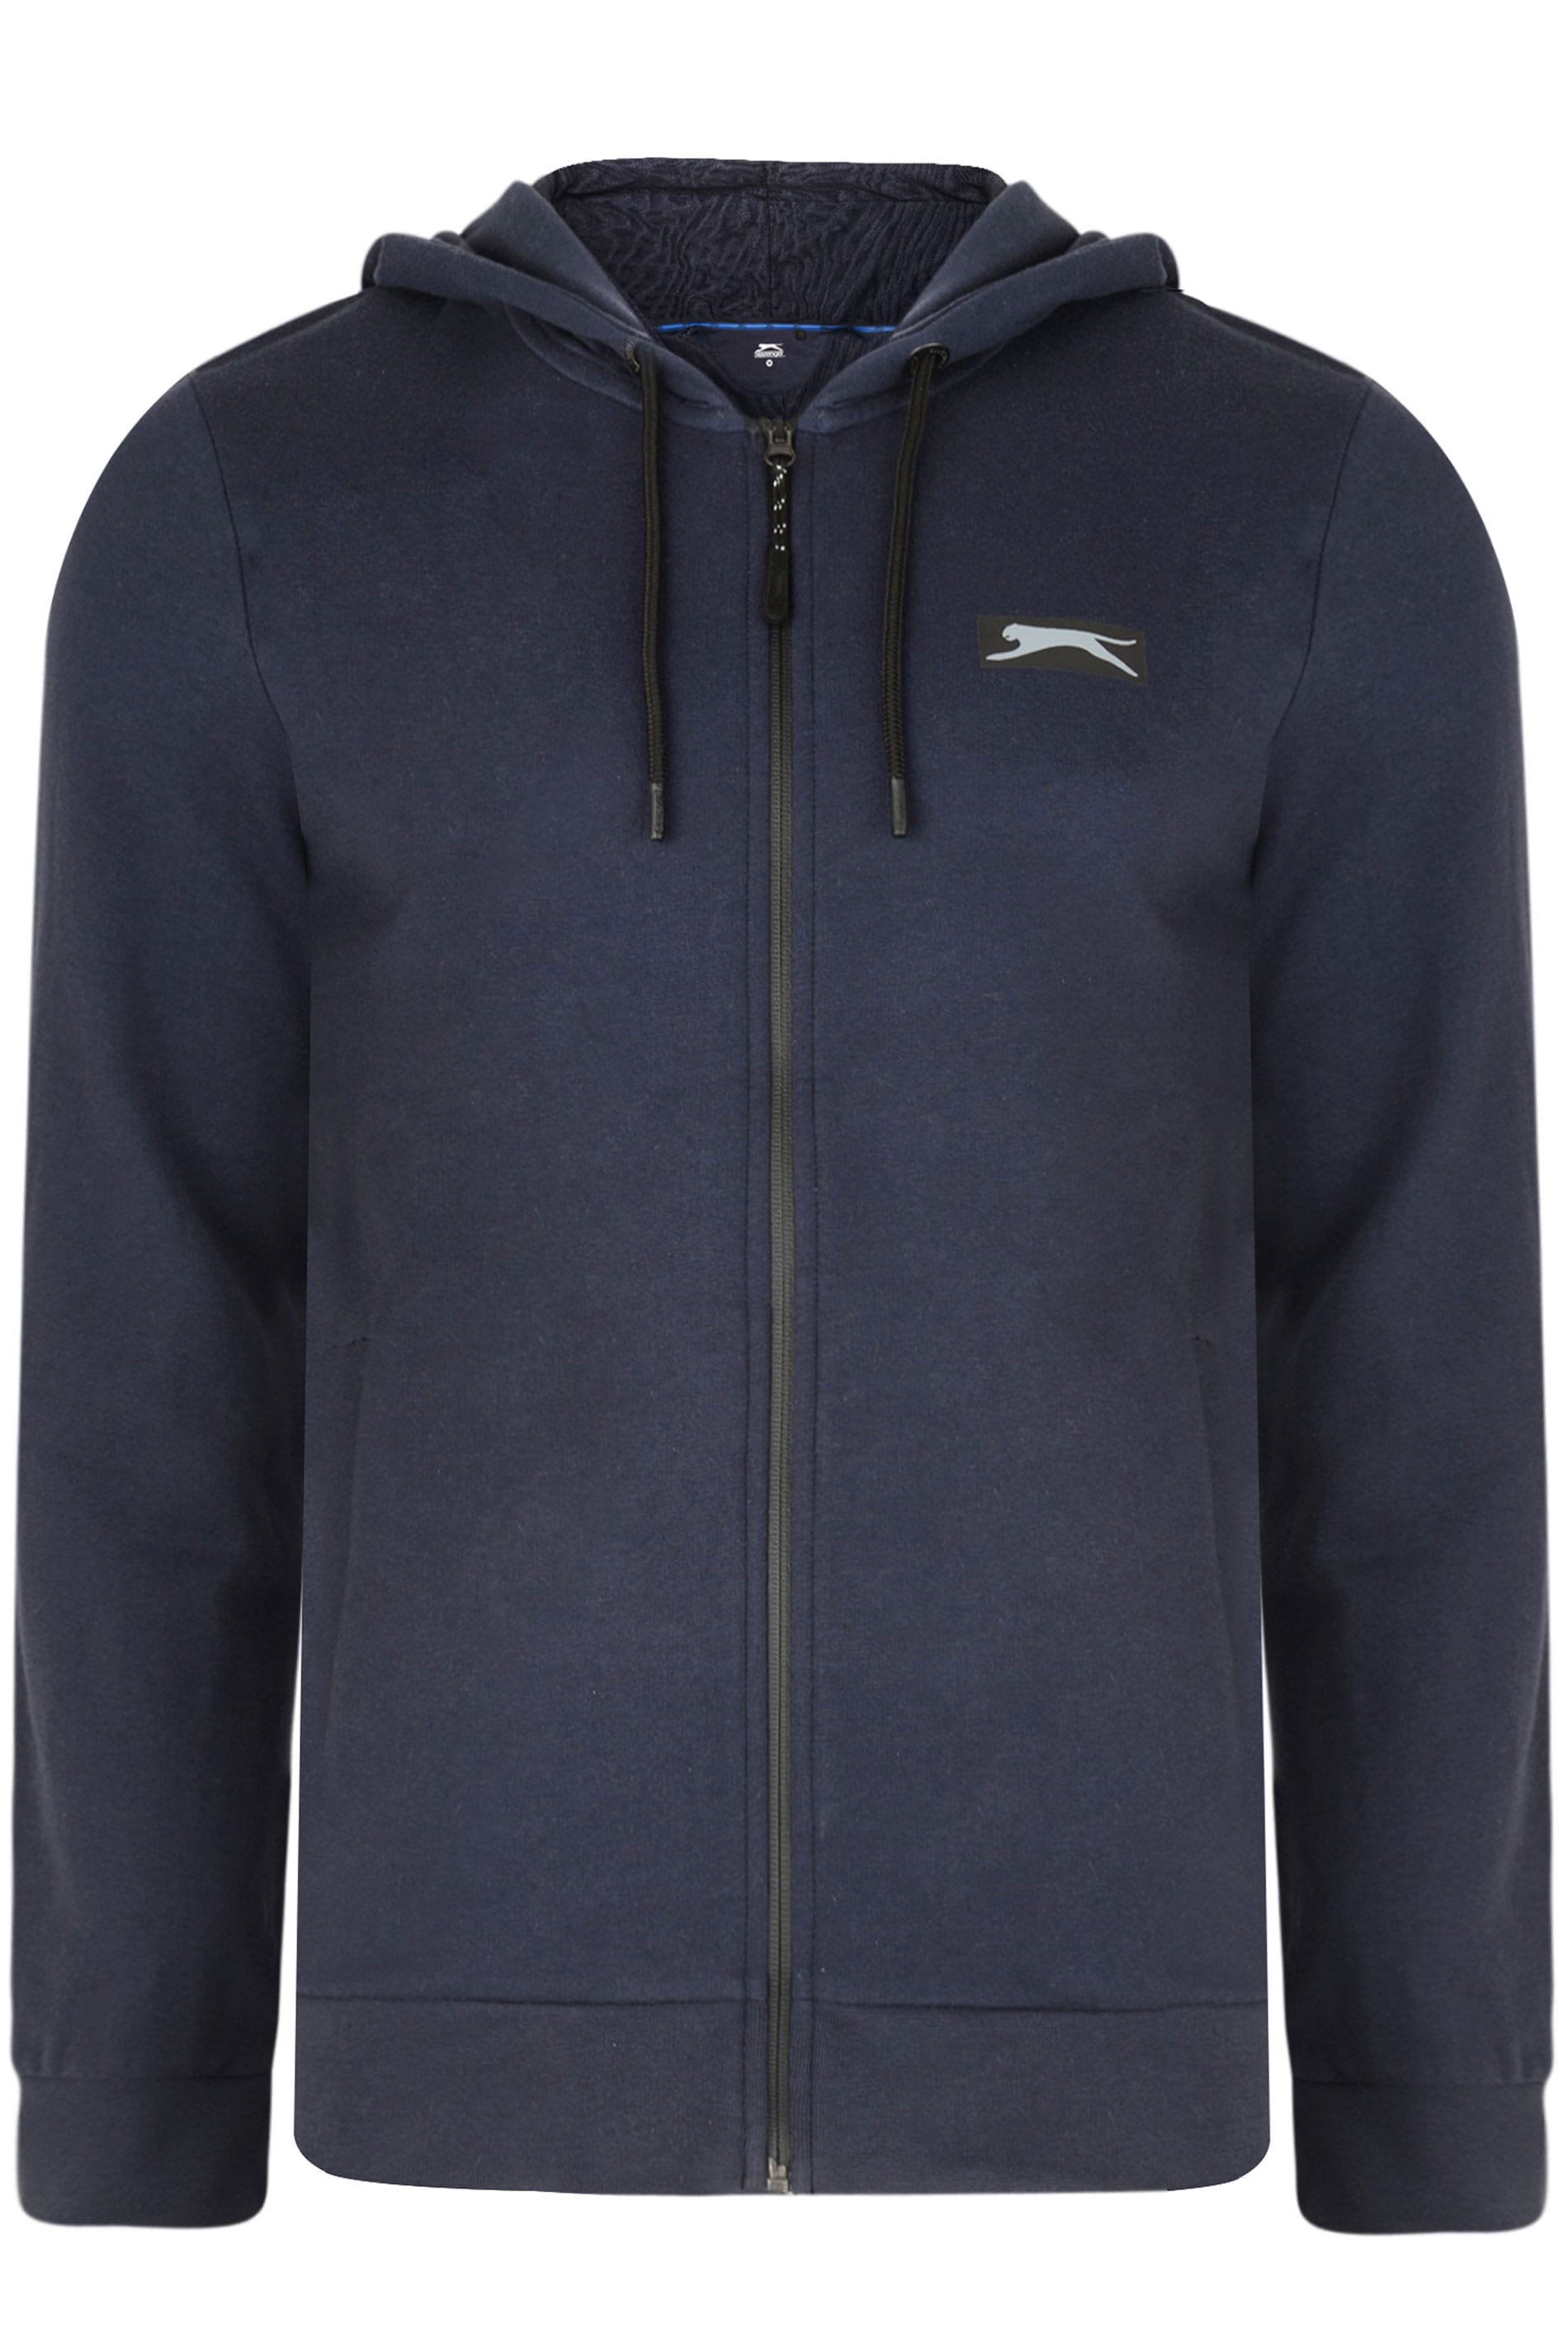 SLAZENGER Navy Zip Through Hoodie